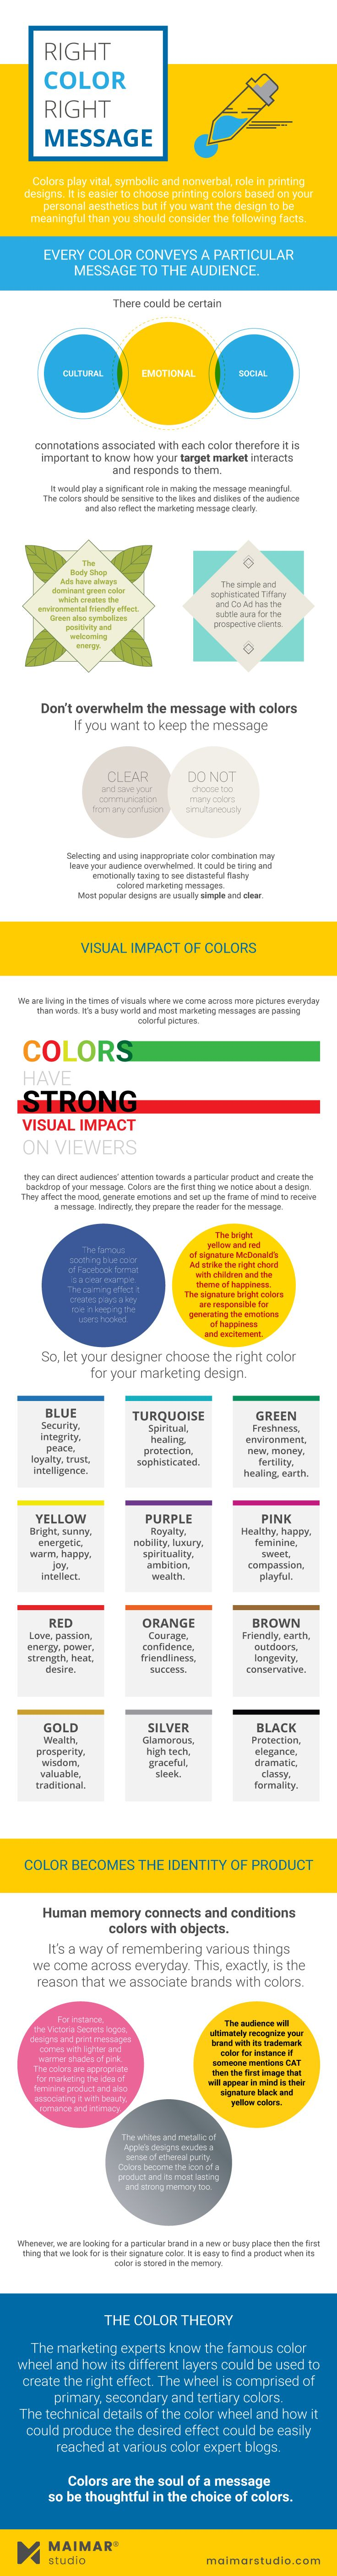 Right Color Right Message #PrintDesign #ColorSymbolism #MarketingSucces #ColorPsychology